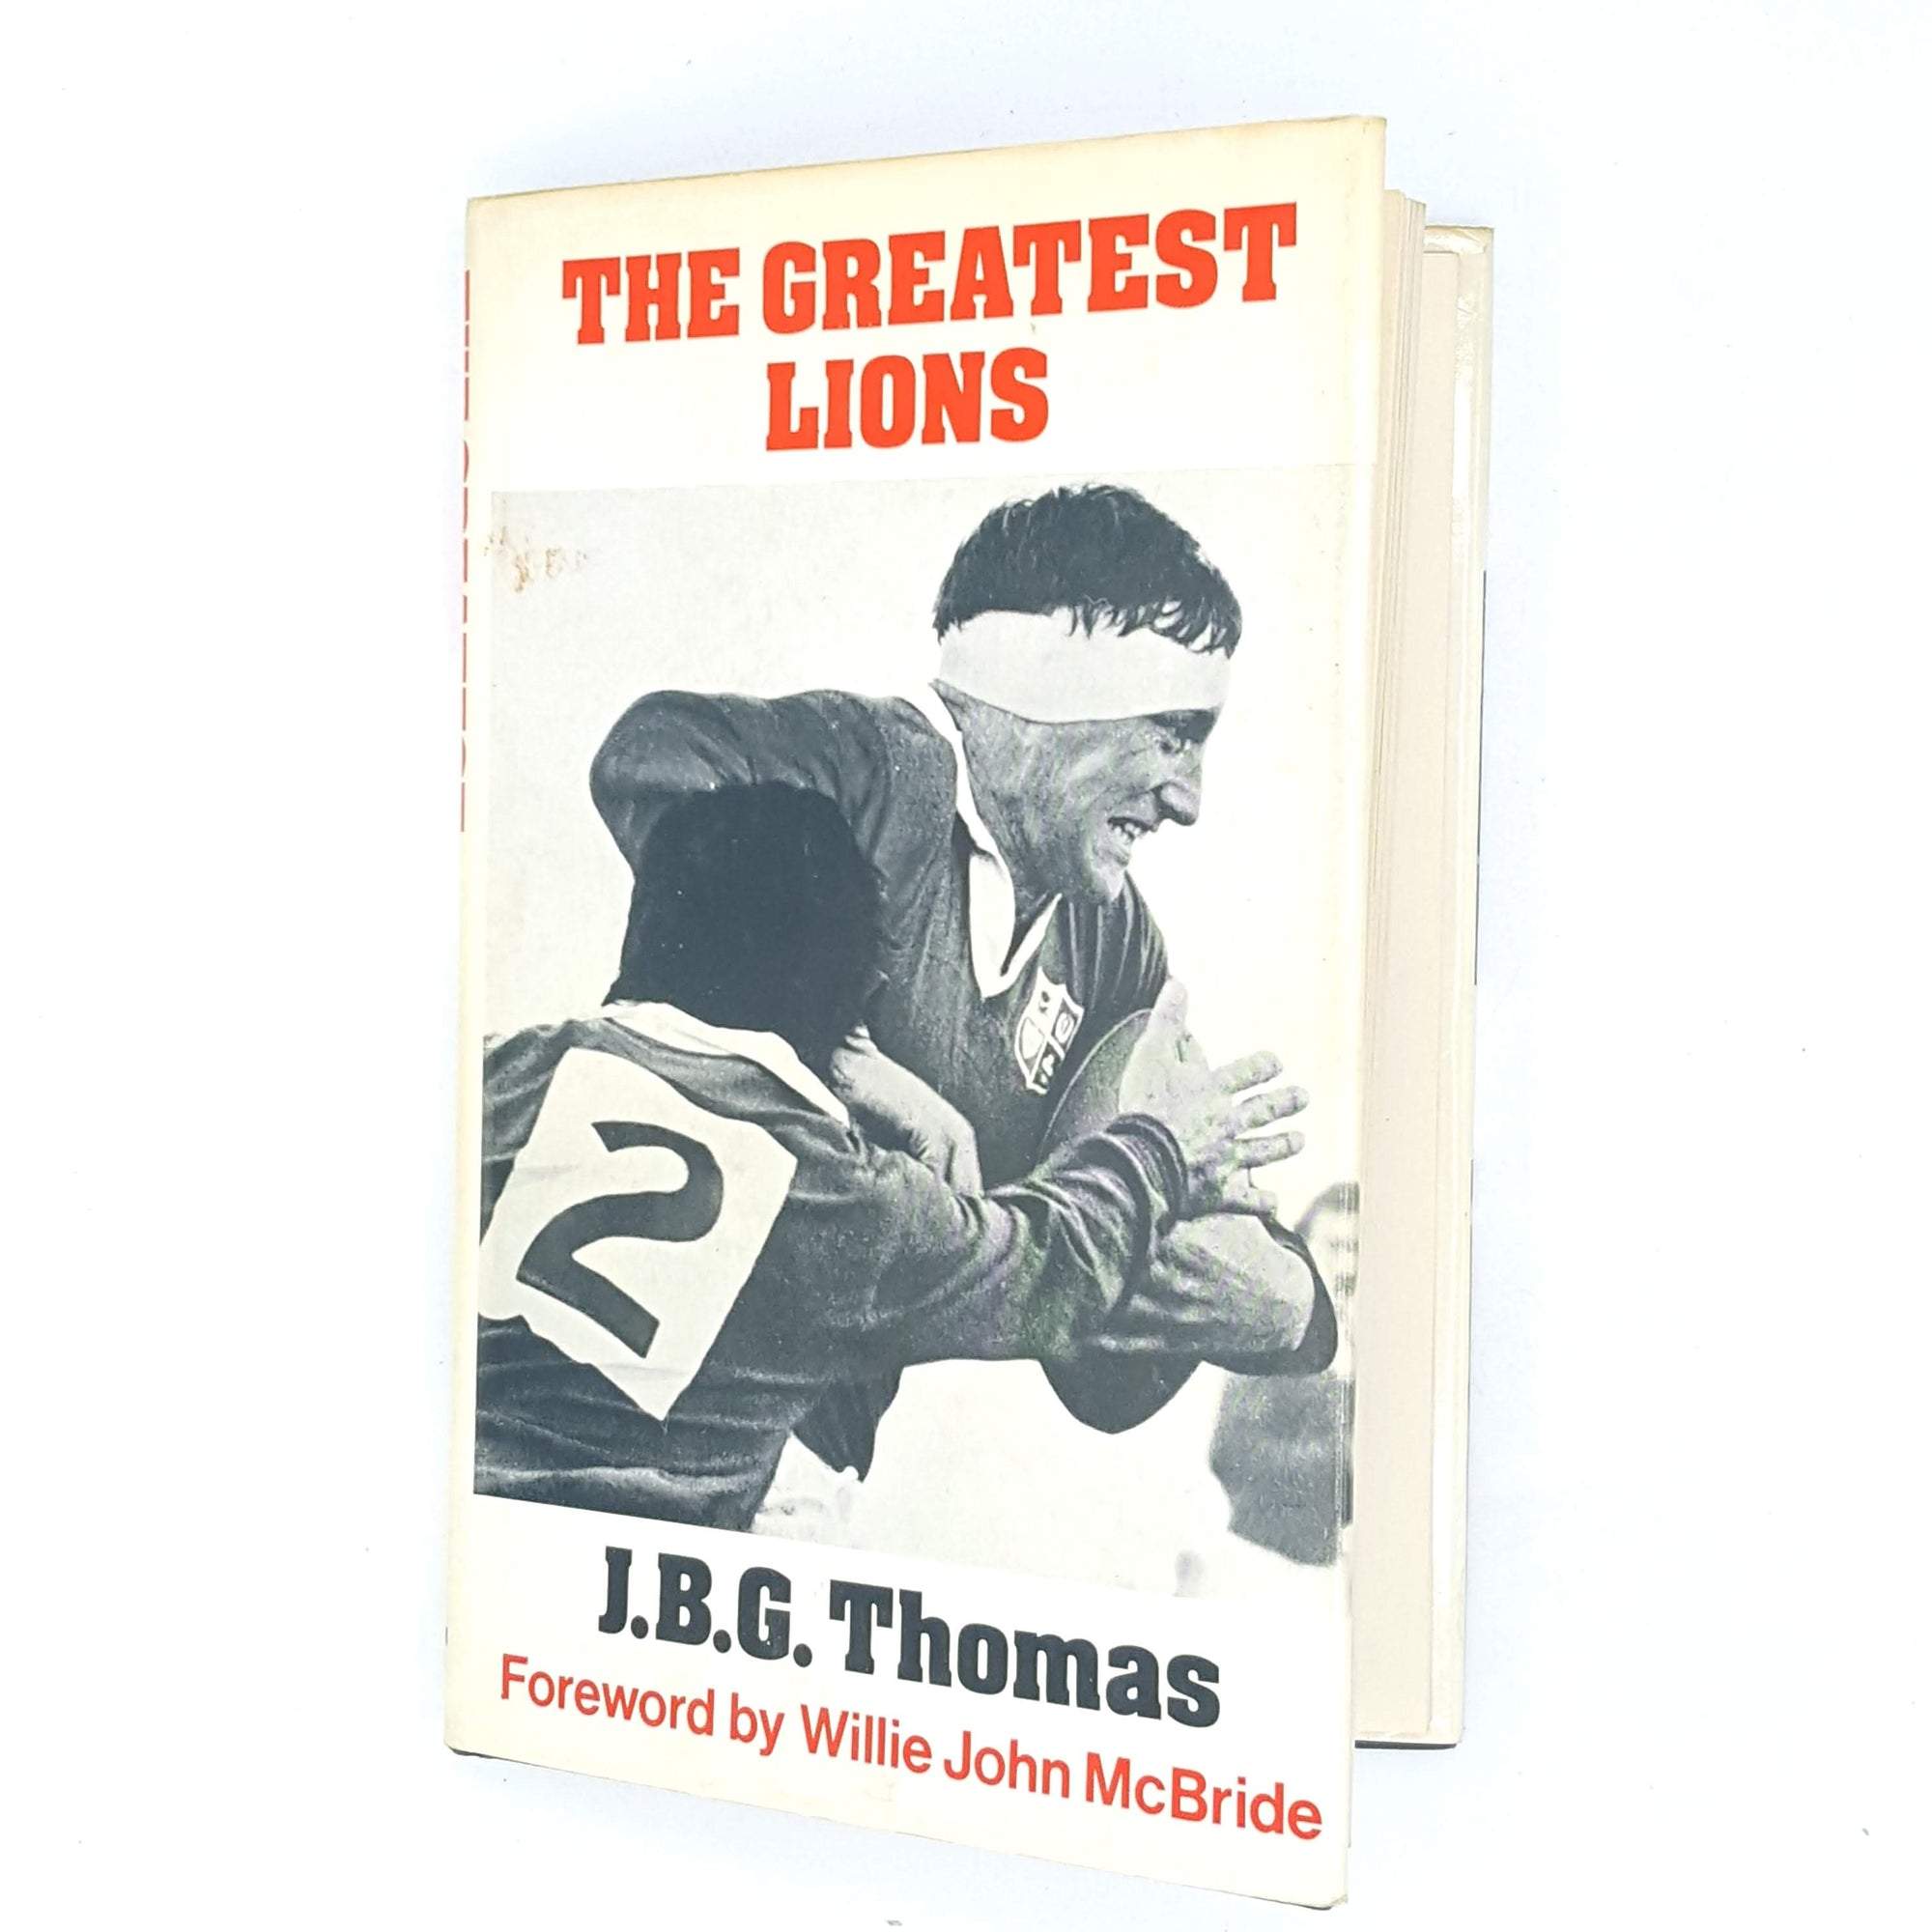 The Greatest Lions by J.B.G. Thomas 1975